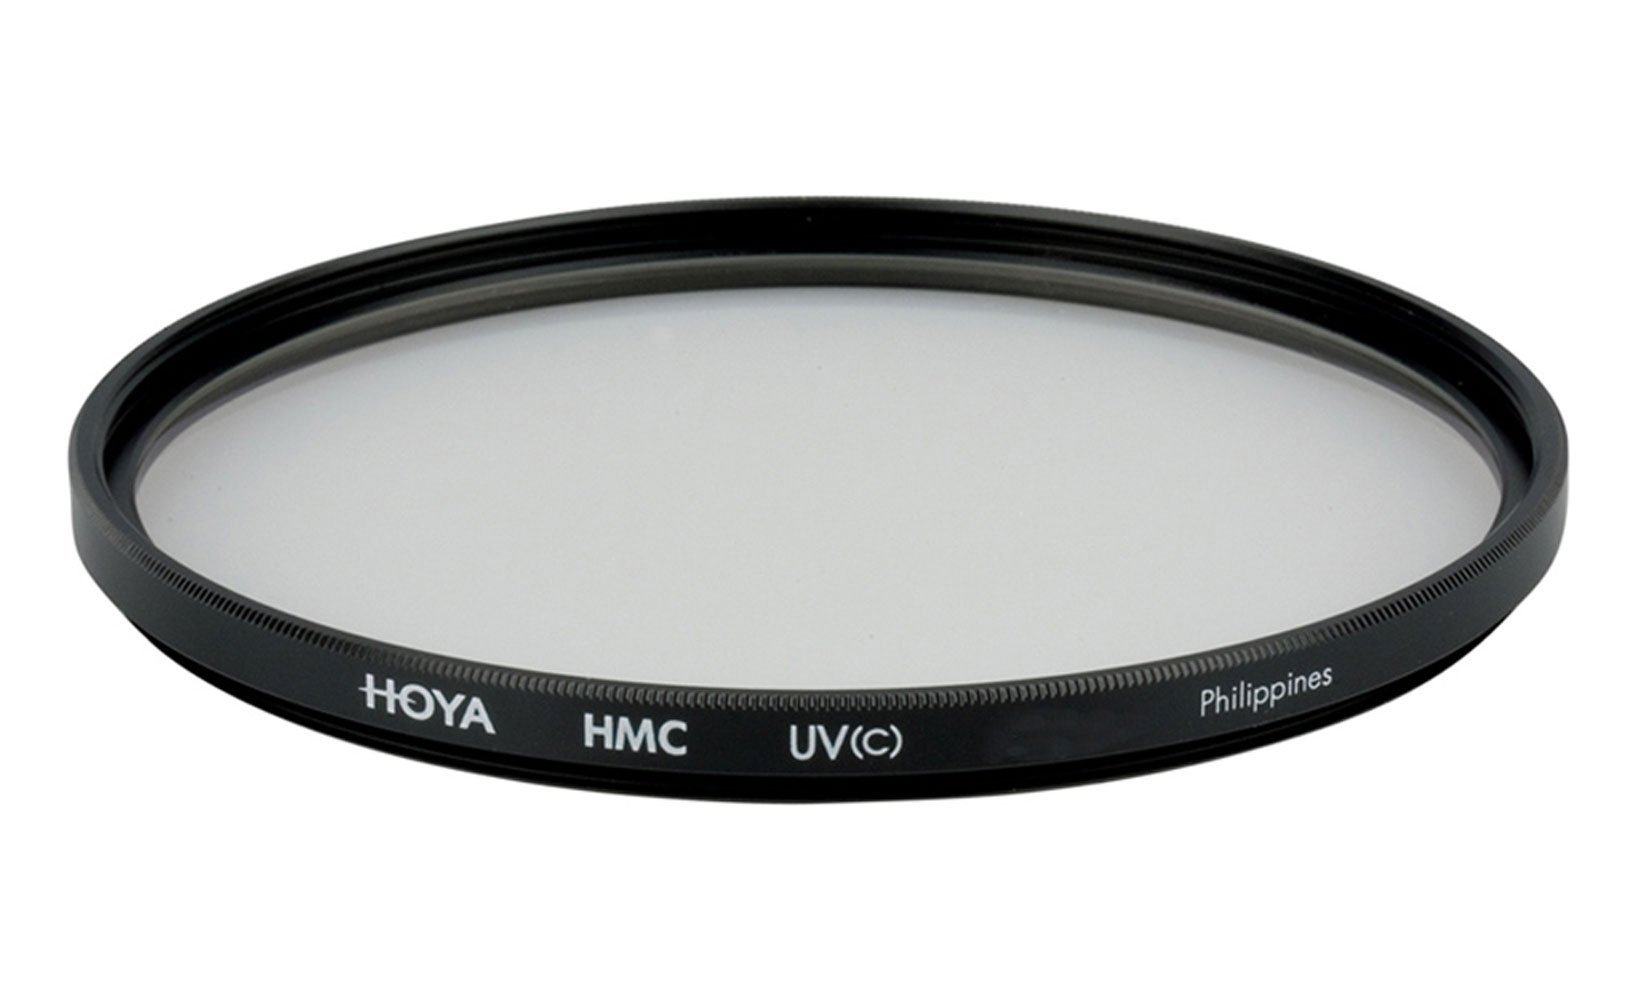 Hoya 55mm UV (Ultra Violet) Multi Coated Glass Filter by Hoya